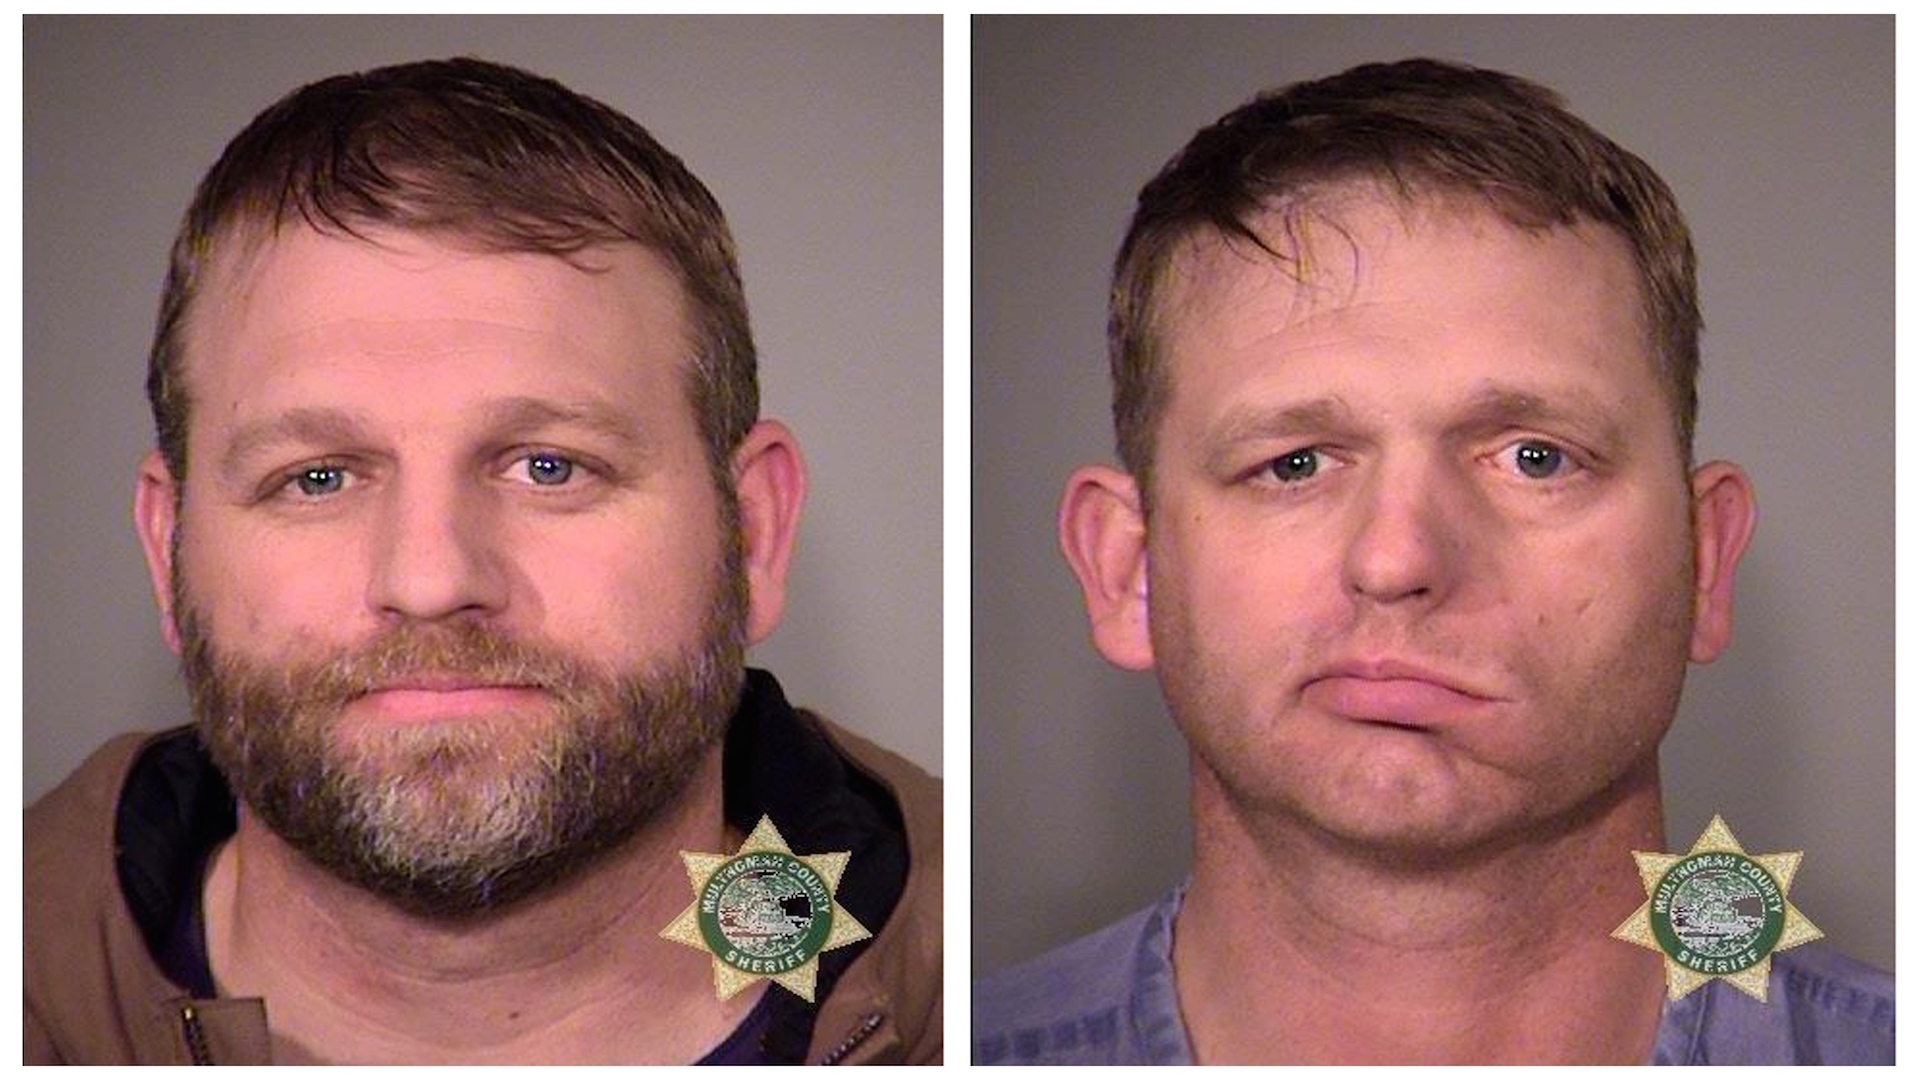 More Oregon occupiers arrested; others leave as standoff appears to fade